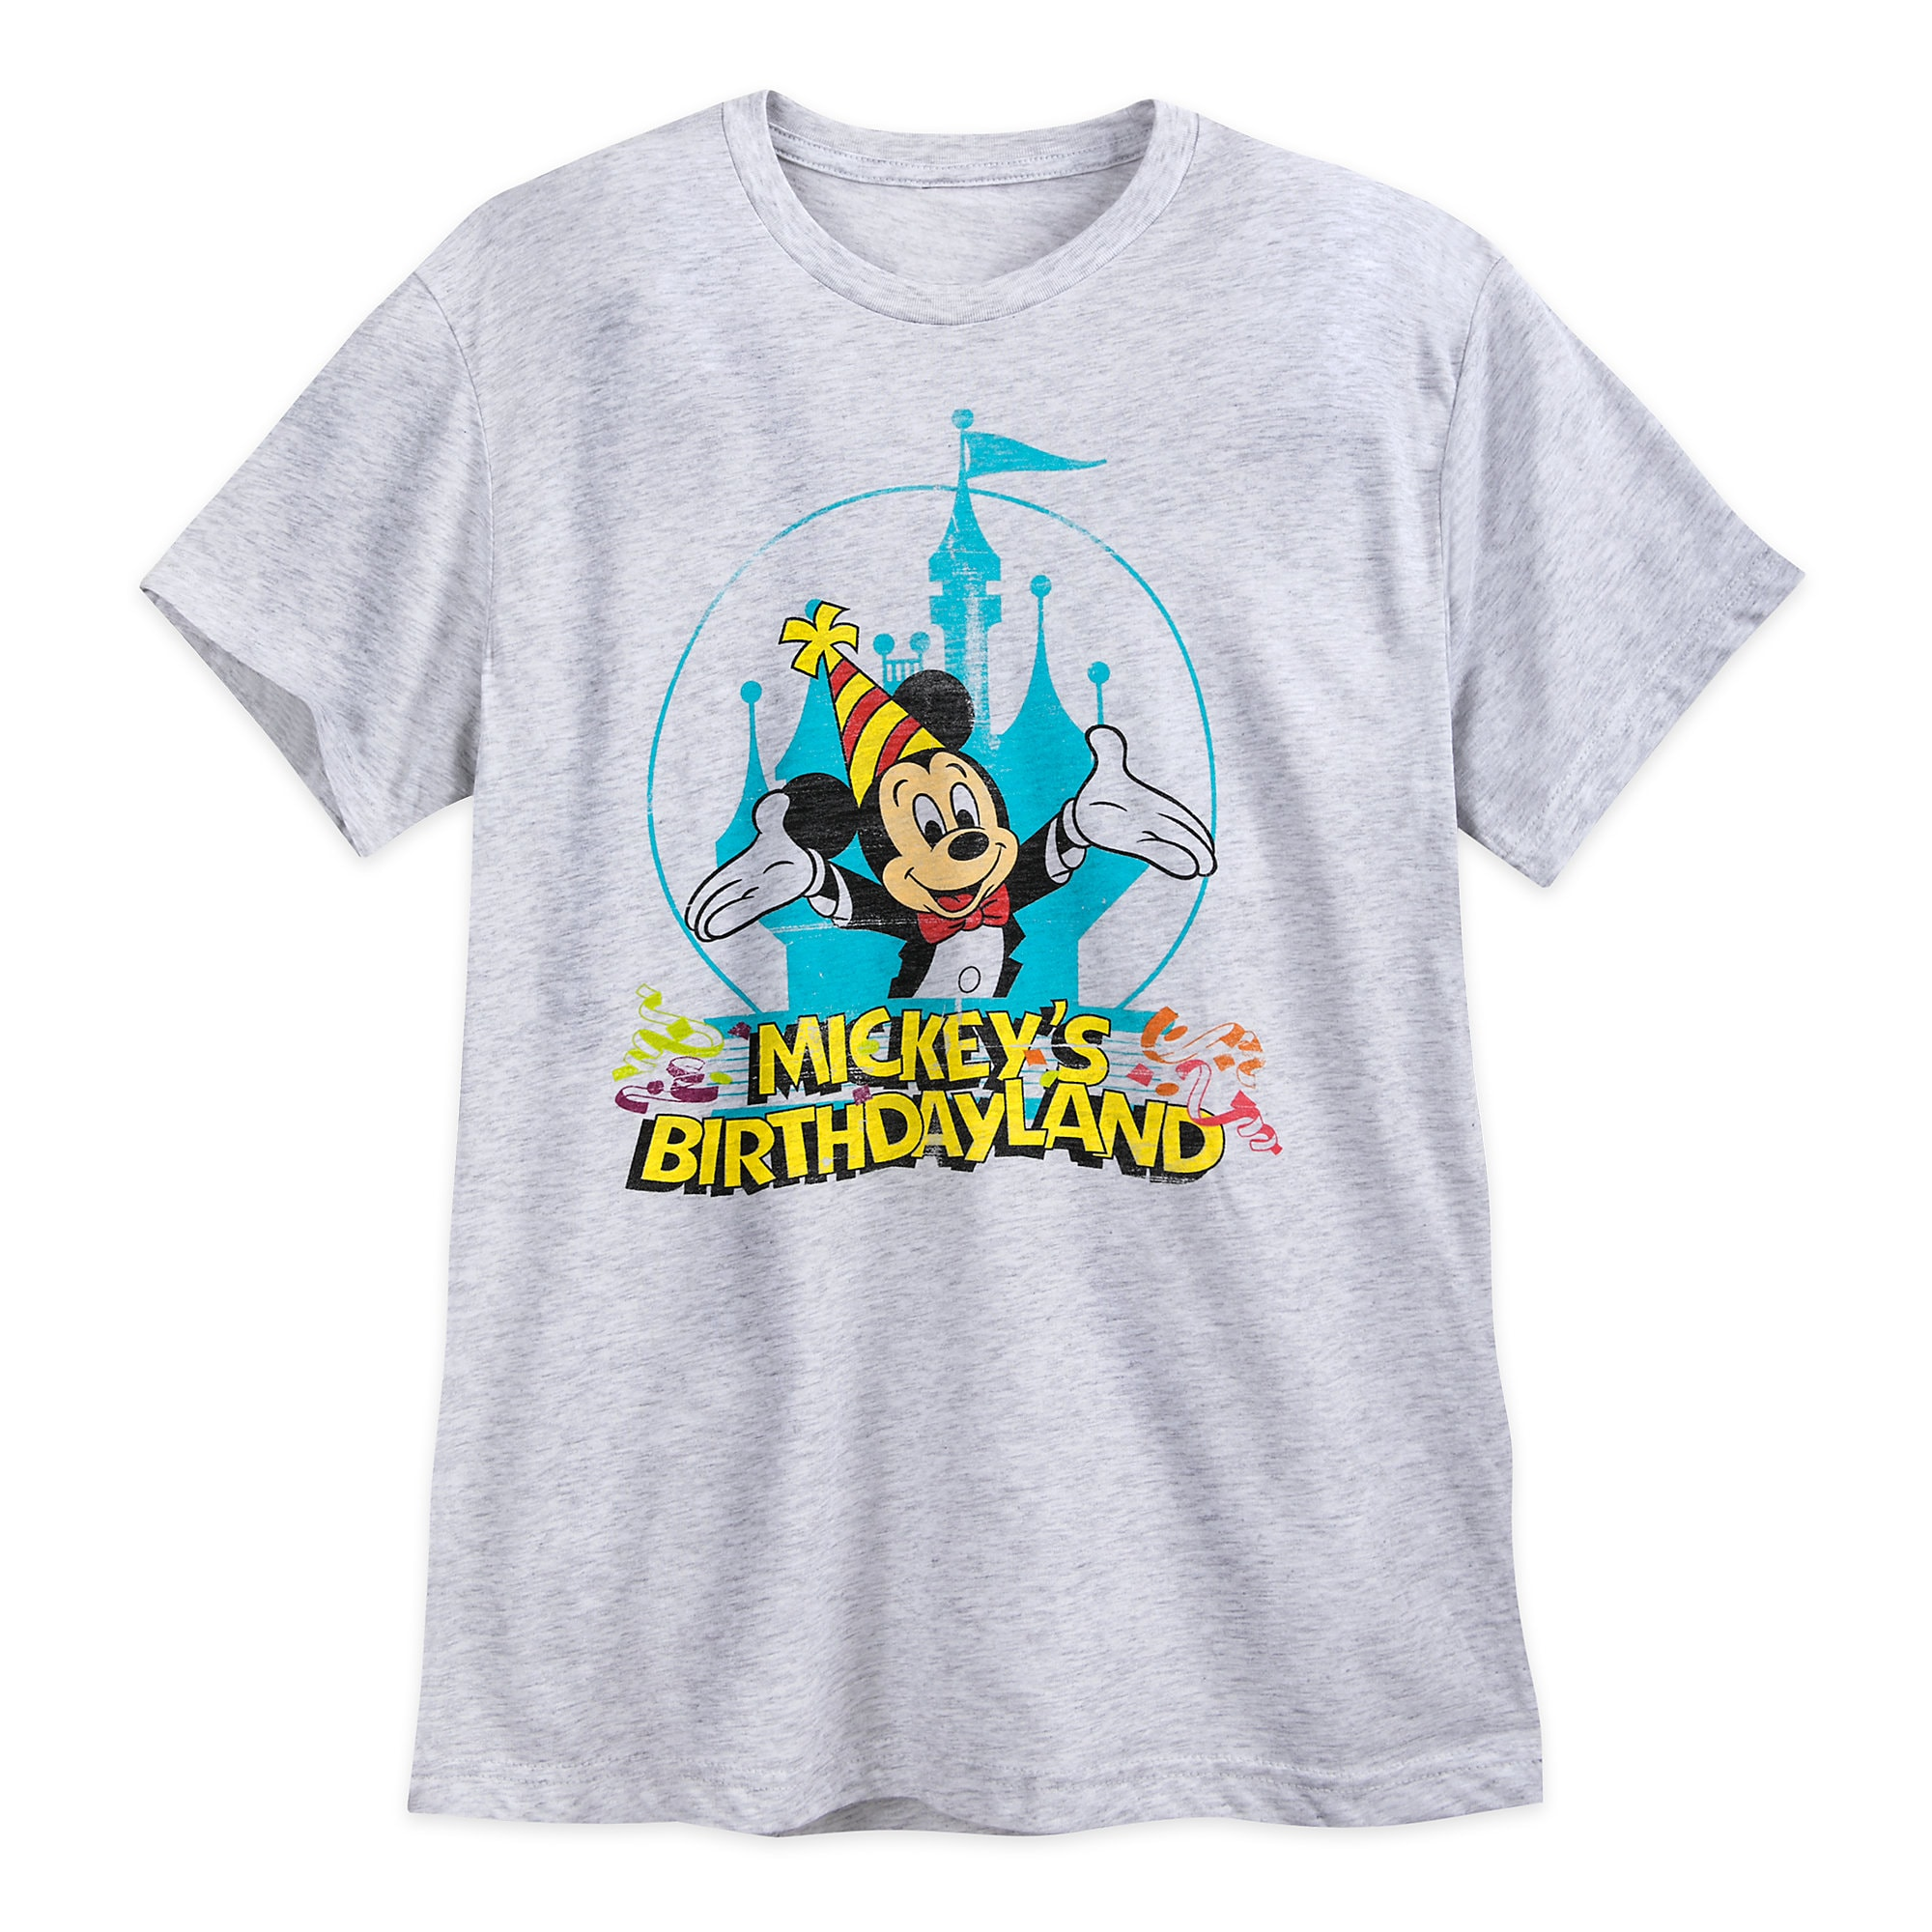 Mickey's Birthdayland YesterEars Retro T-Shirt for Adults - Limited Release